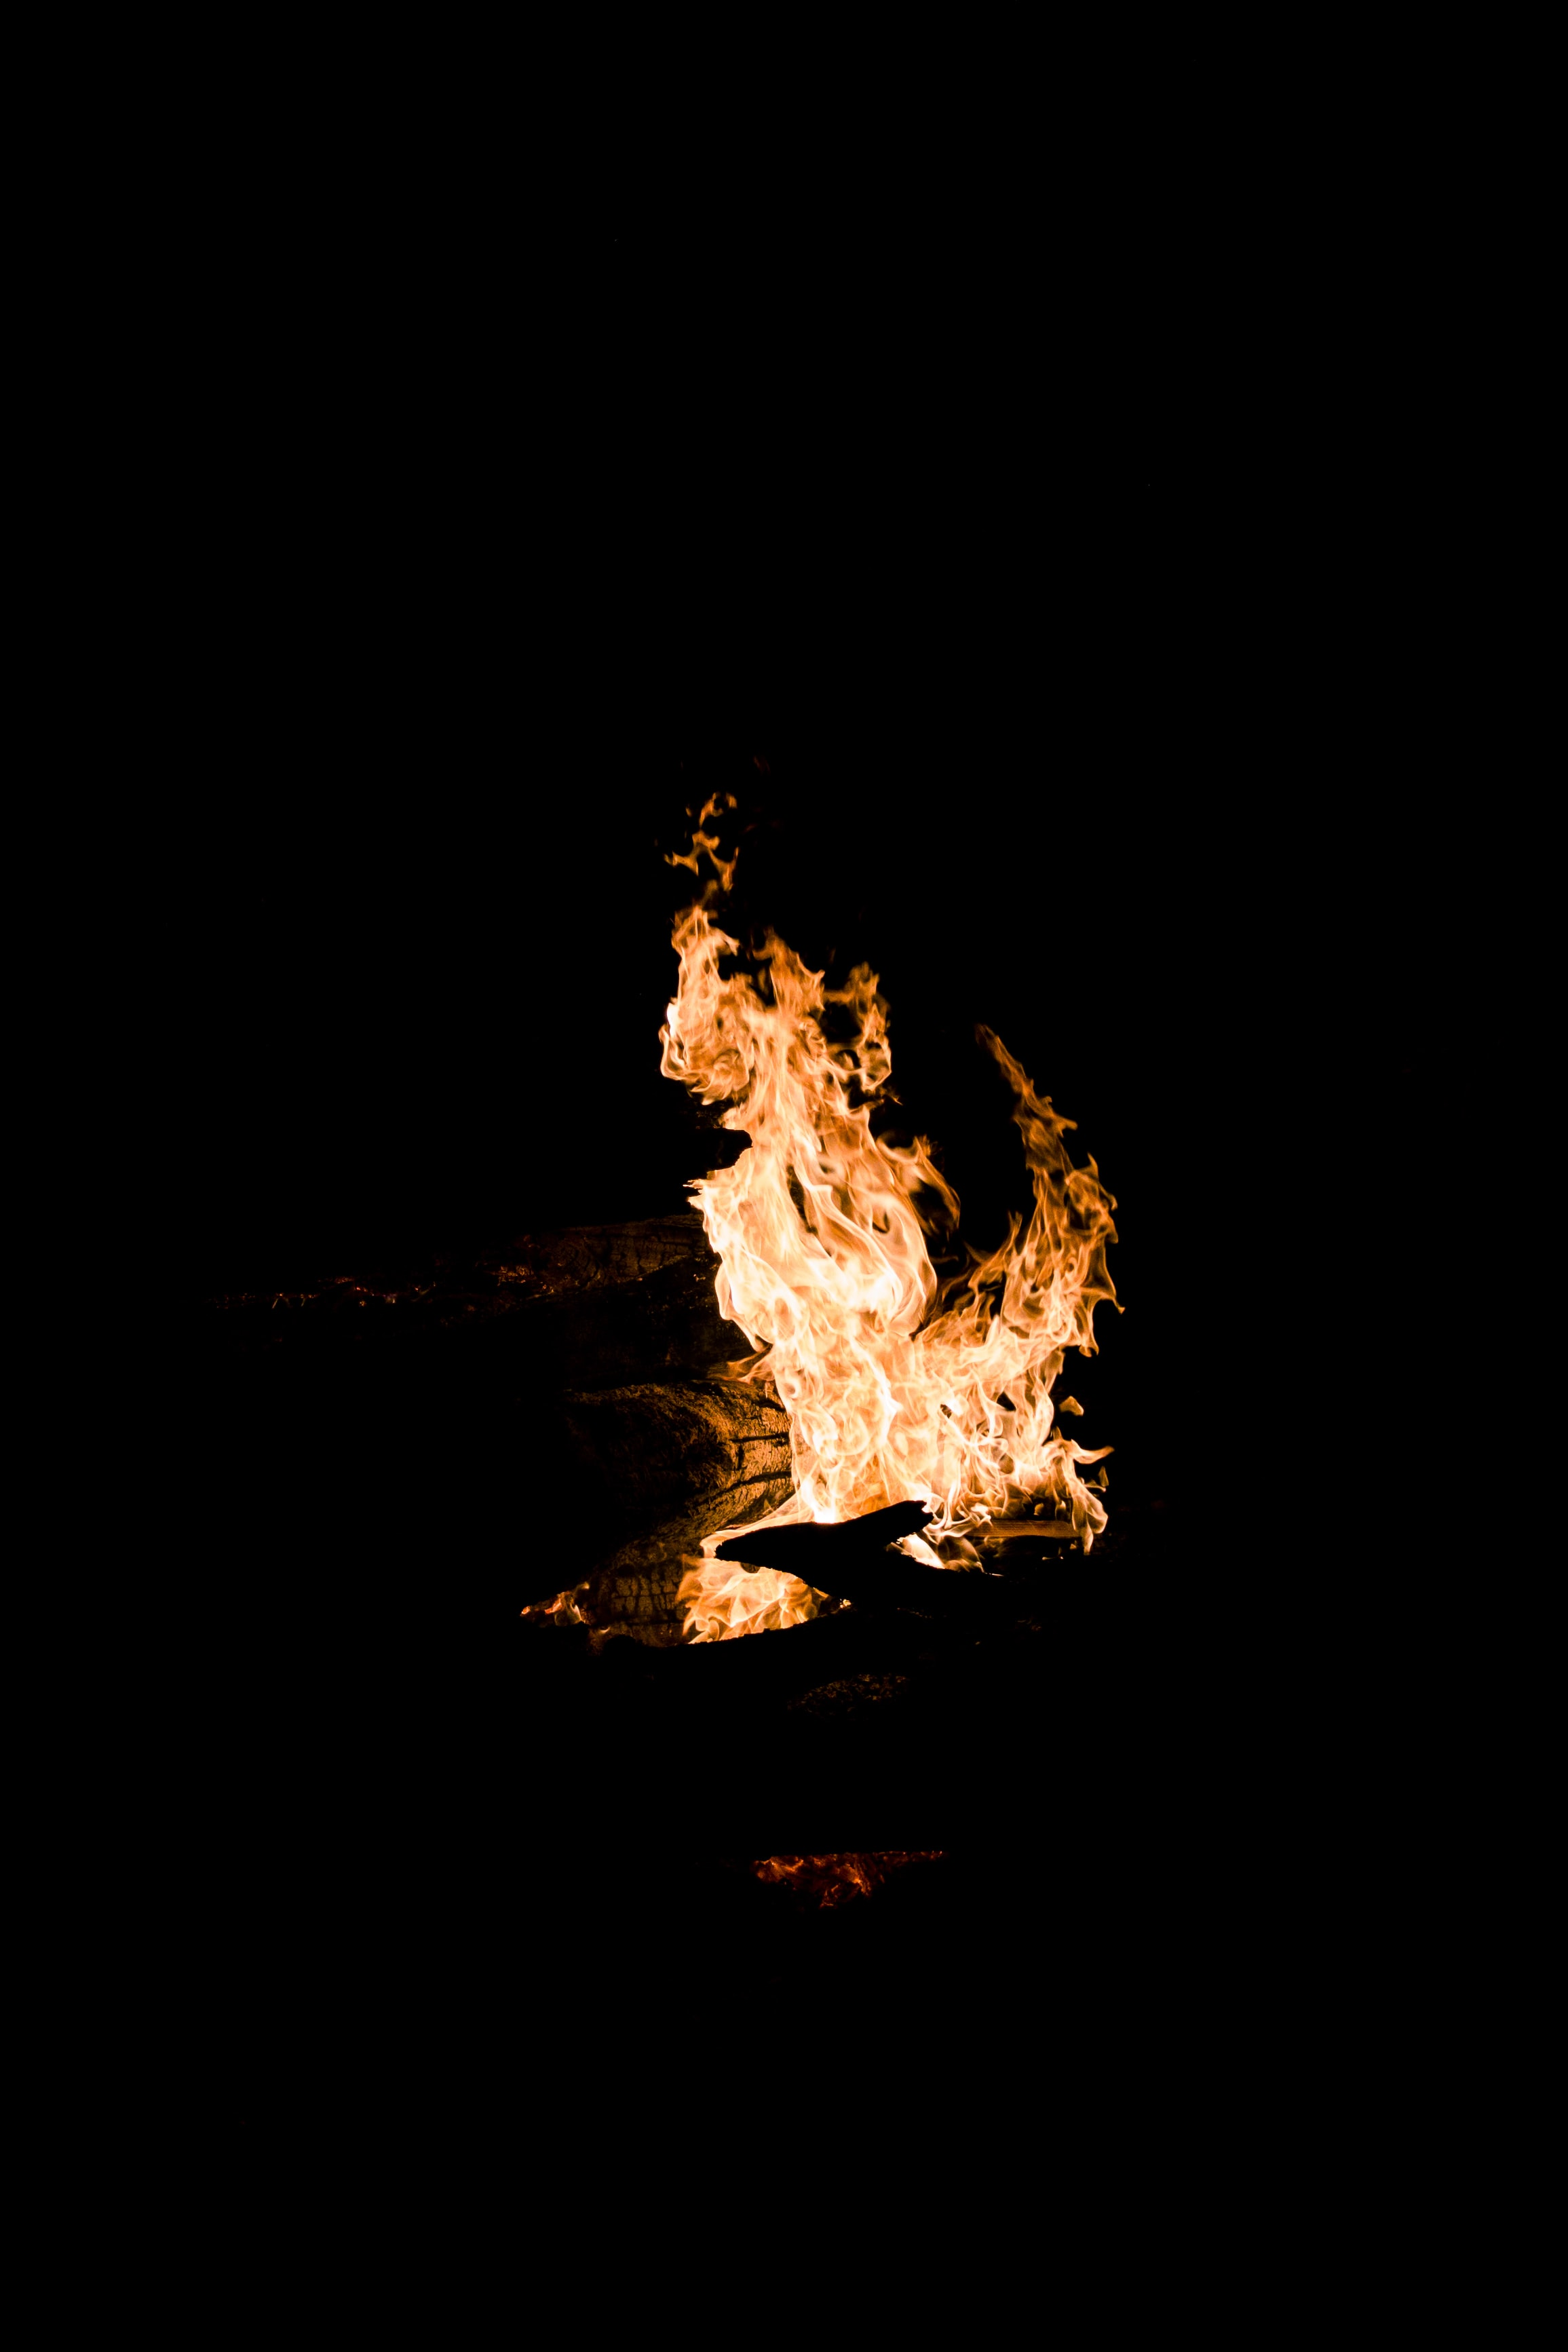 burning bonfire at nighttime